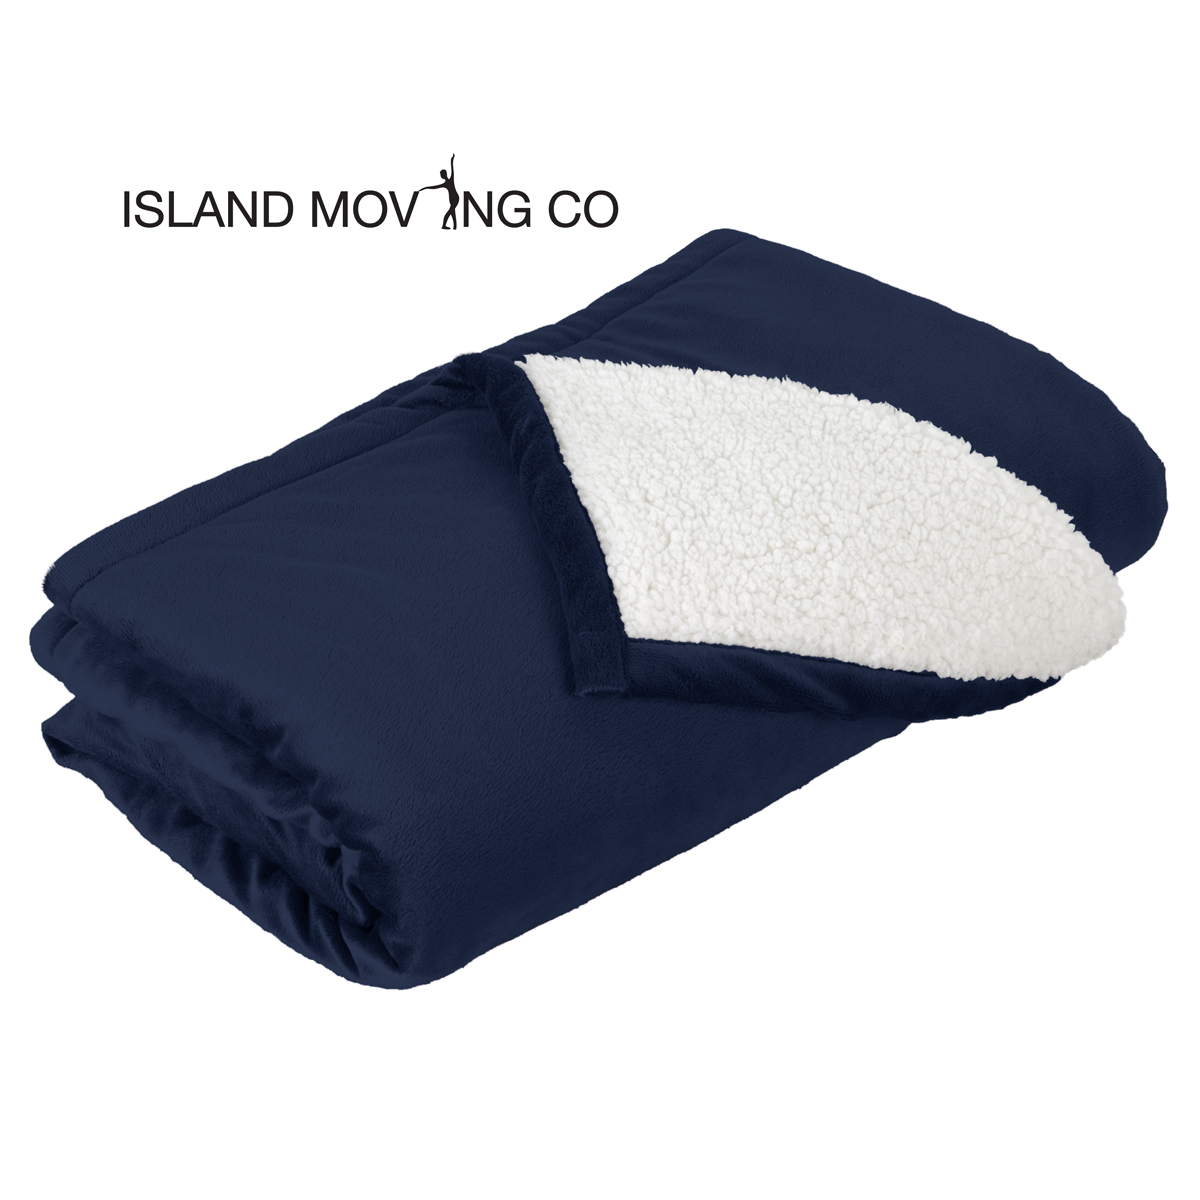 IMC - FLEECE BLANKET